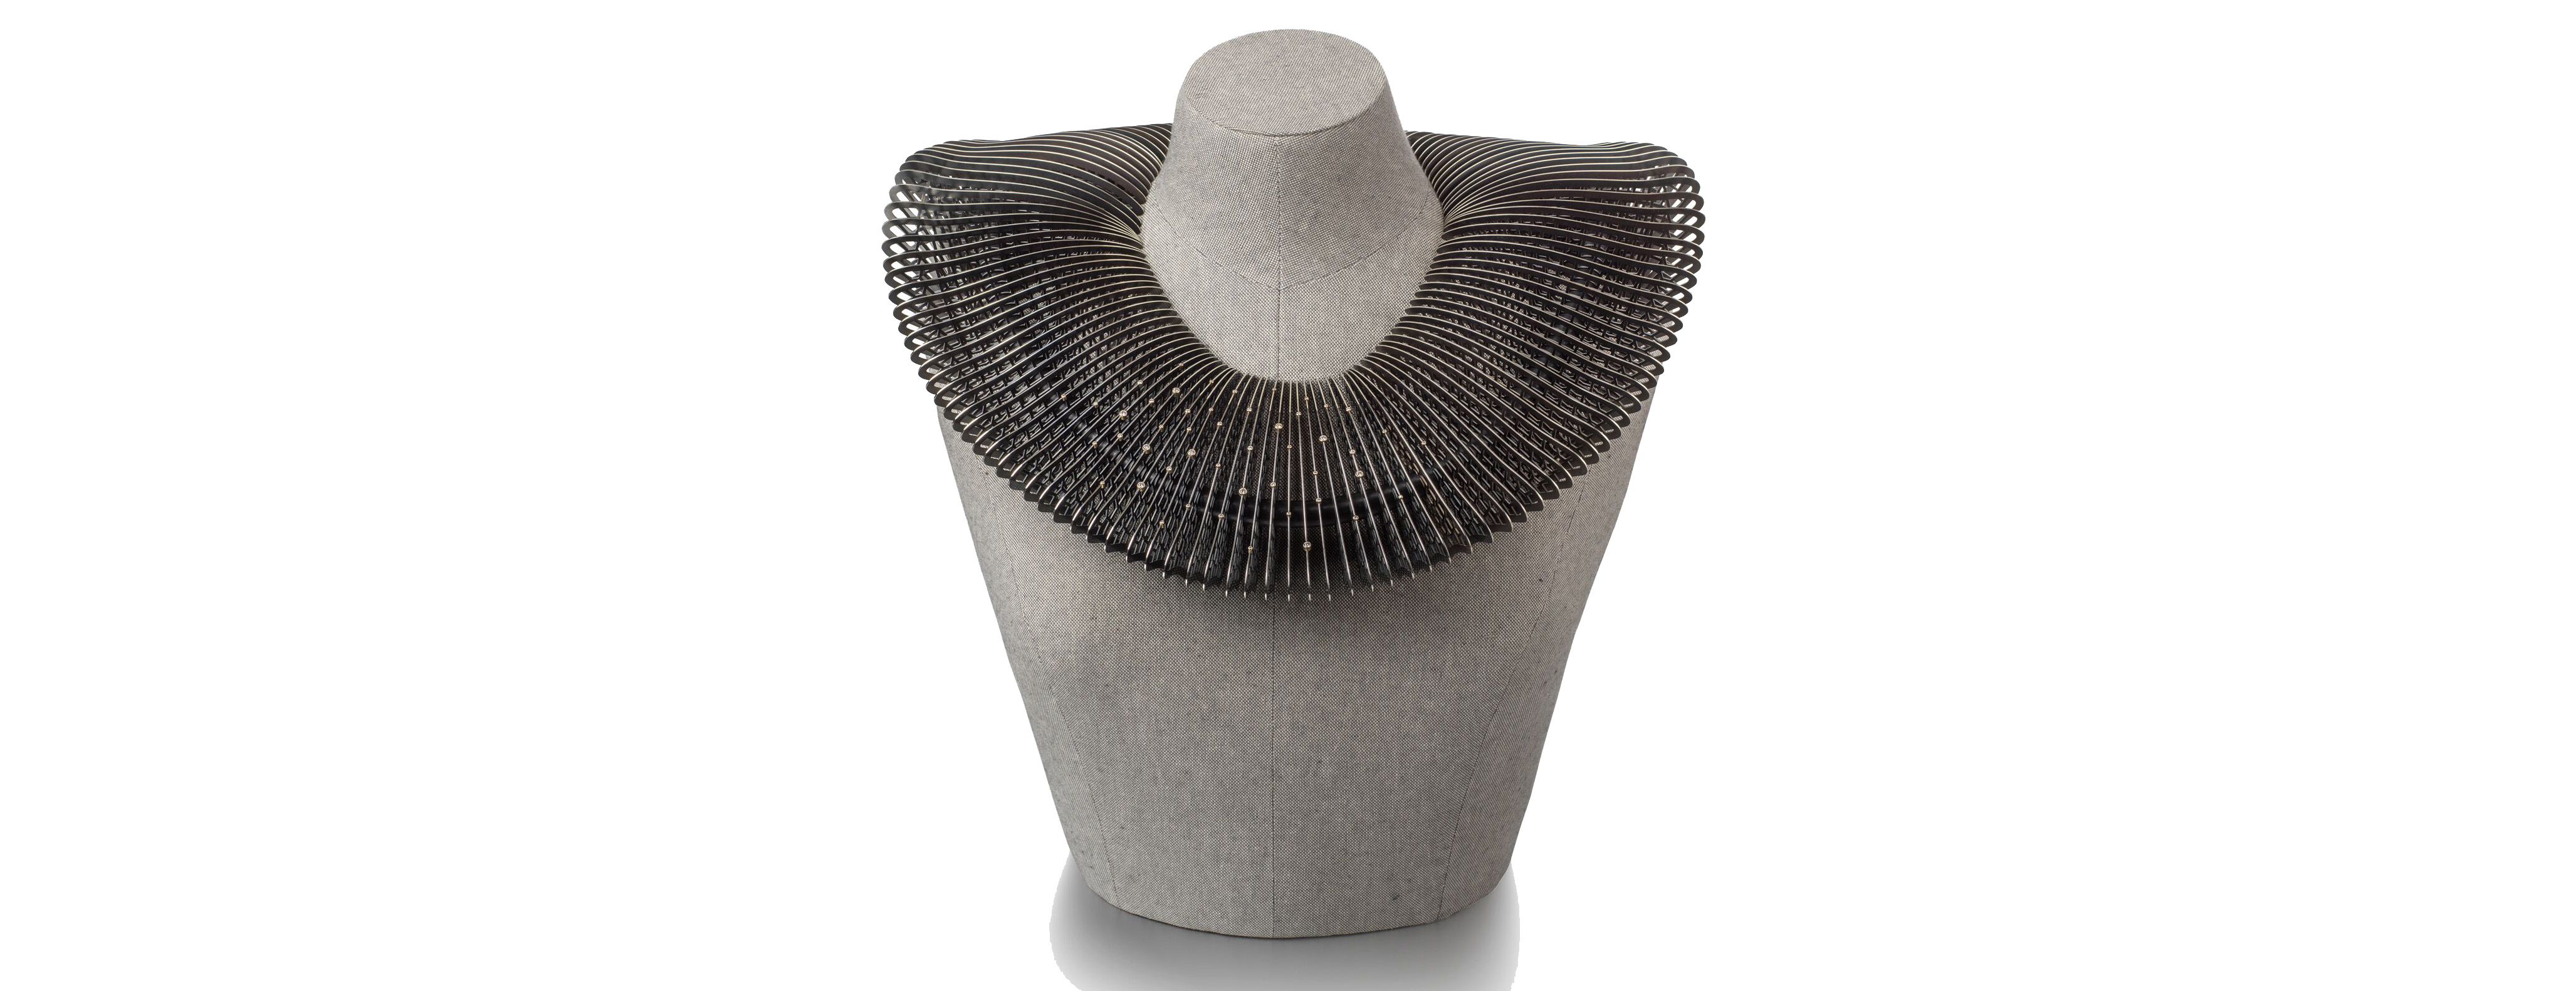 Lacewing Verto Necklace by John Moore, who won two awards at the Goldsmiths Craft & Design Council Awards 2019